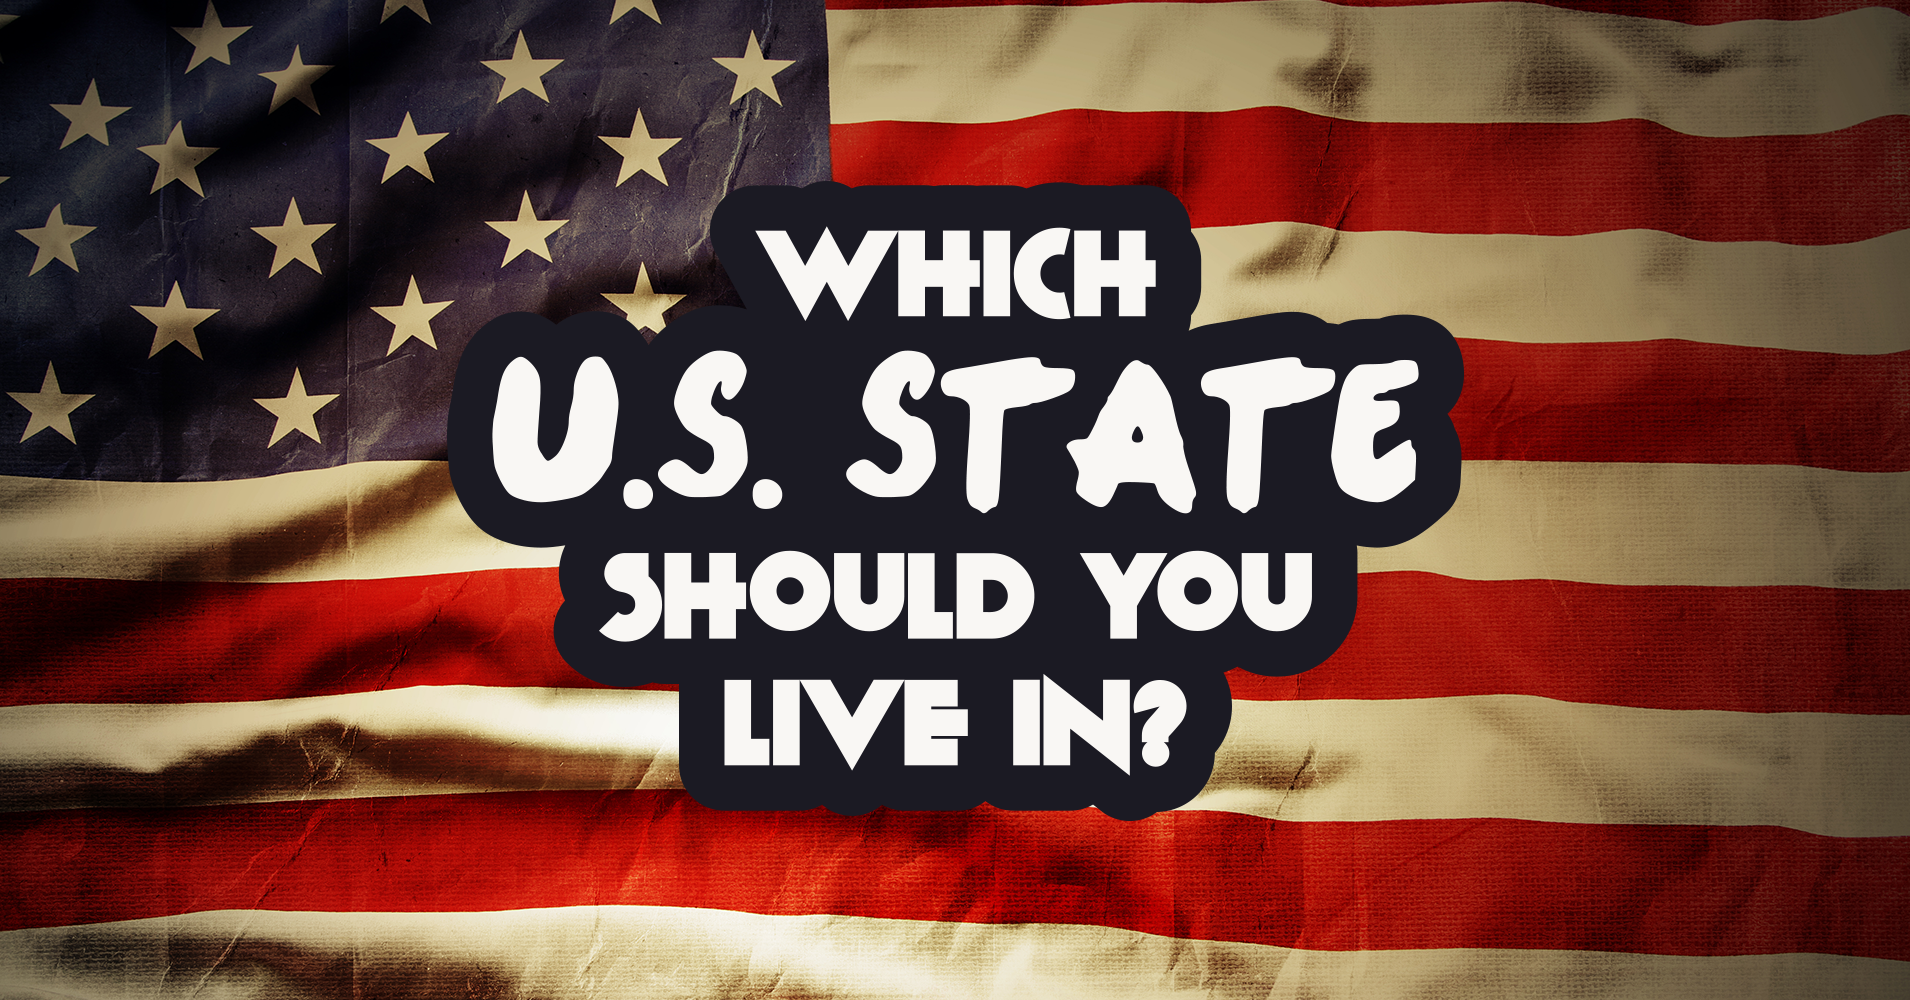 What should be the state 69